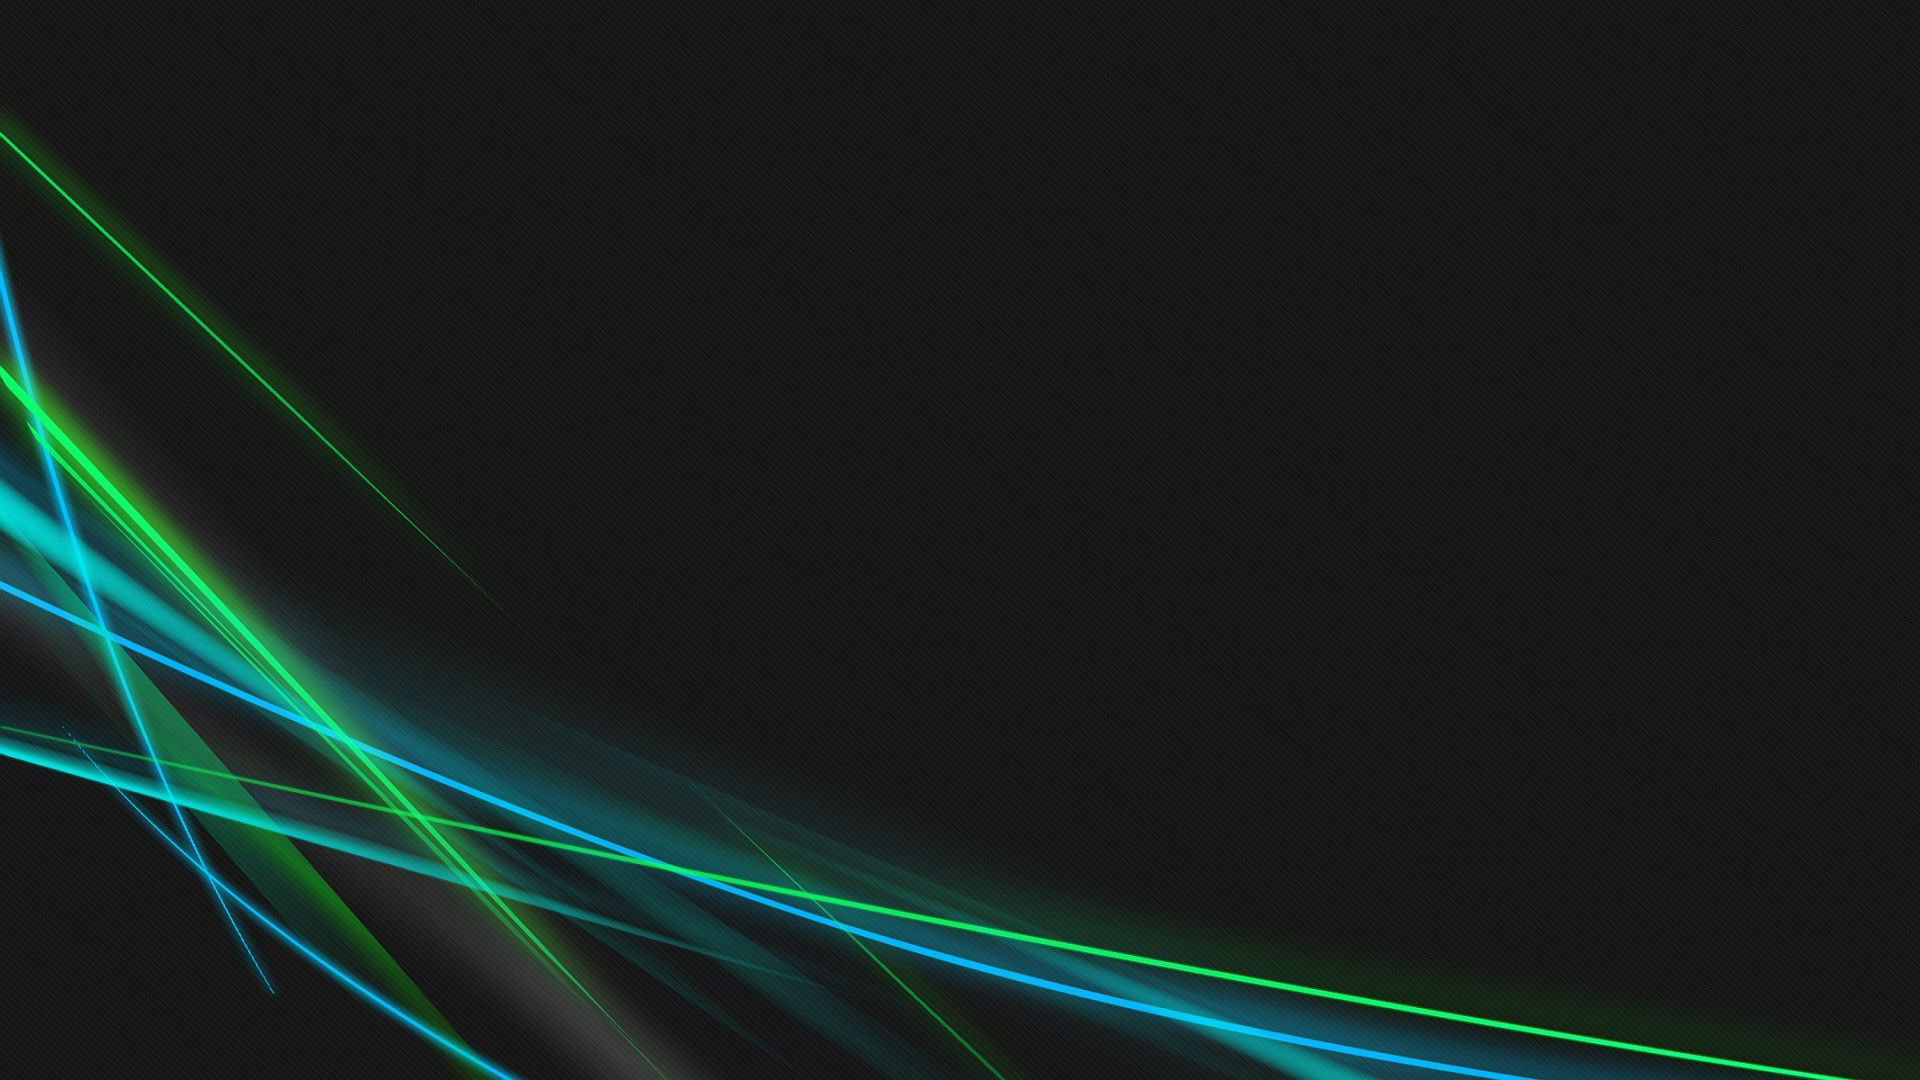 Blue and green neon curves wallpaper – 578863